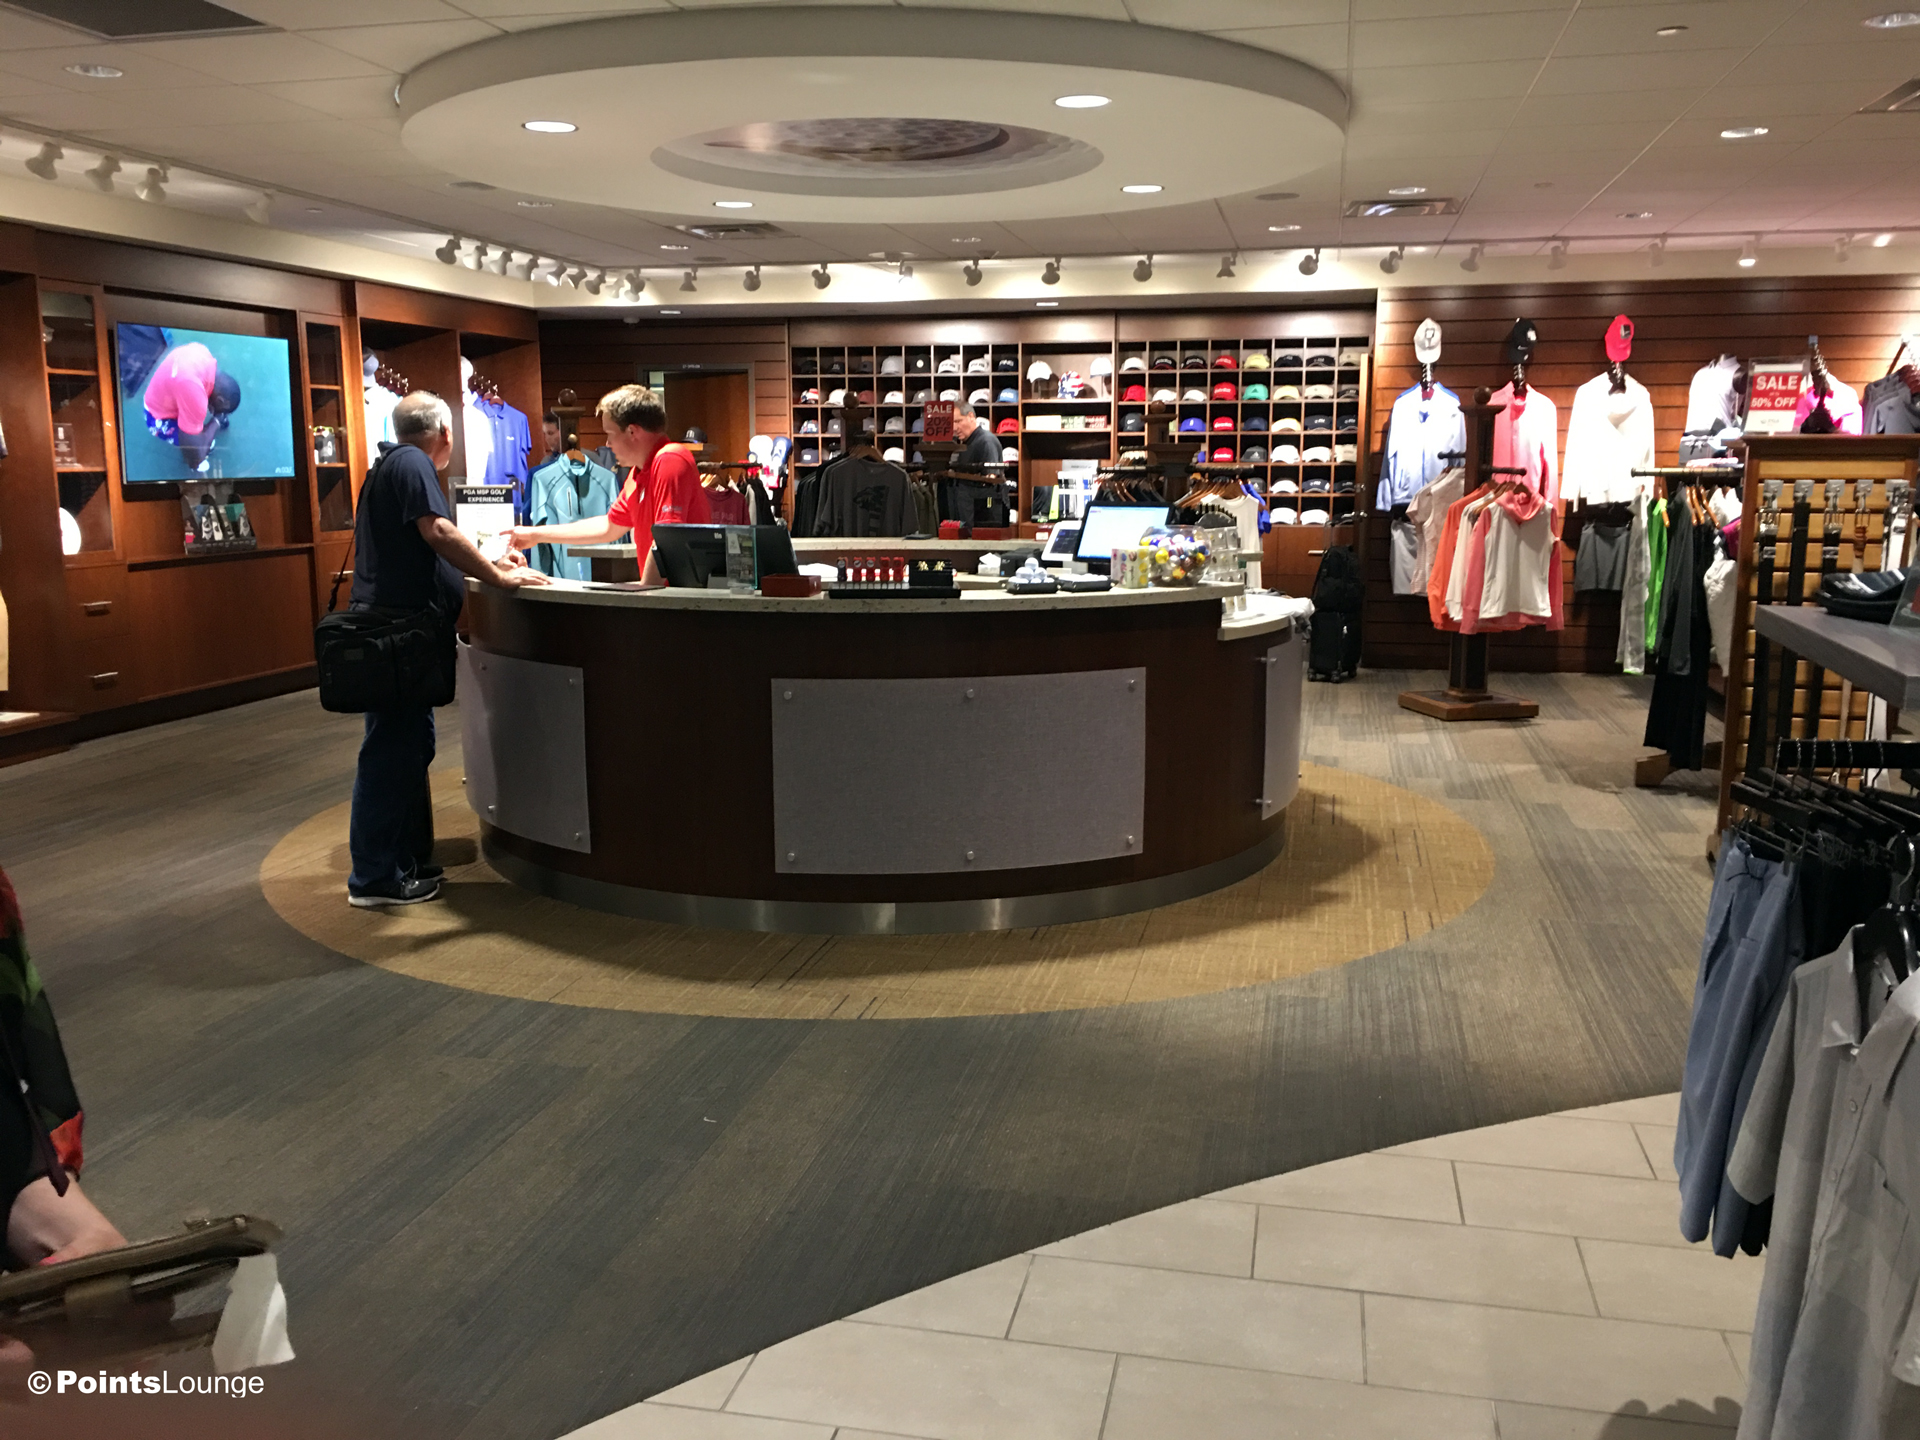 A view of the entrance to the PGA MSP golf-themed airport lounge at the Minneapolis-St. Paul International Airport. One of the ways the lounge can be accessed is with Priority Pass membership. (Click for a larger image.)